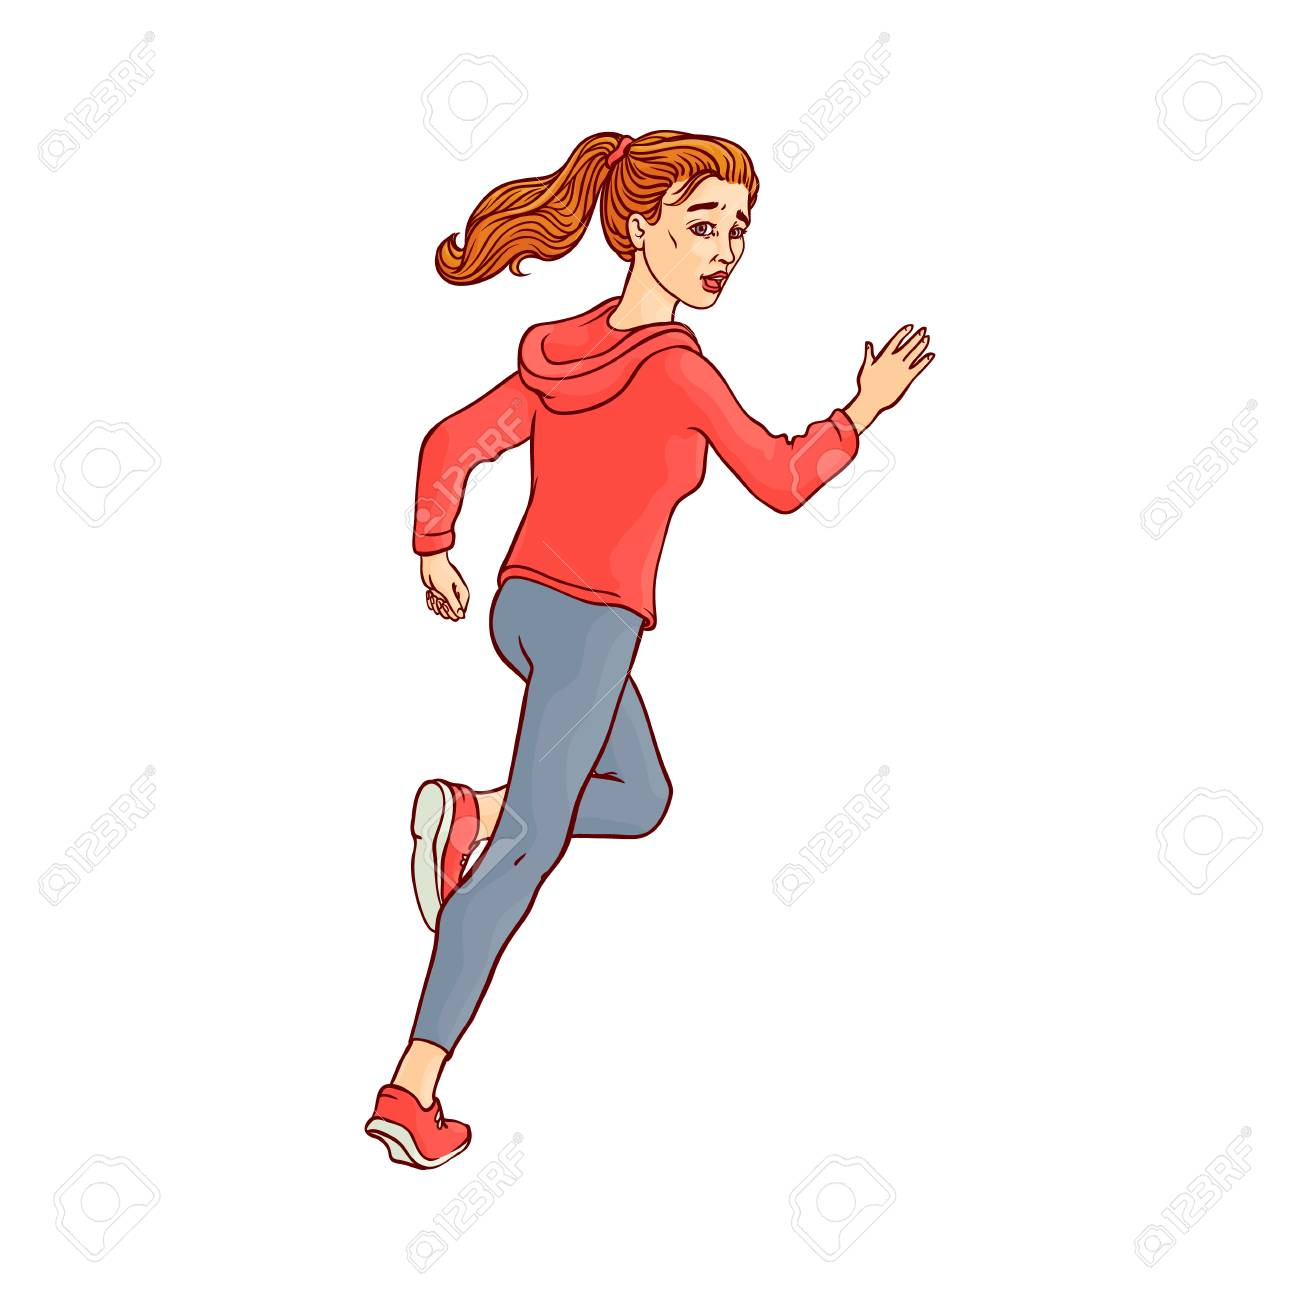 Young sportive girl in athletic clothing, running looking back.